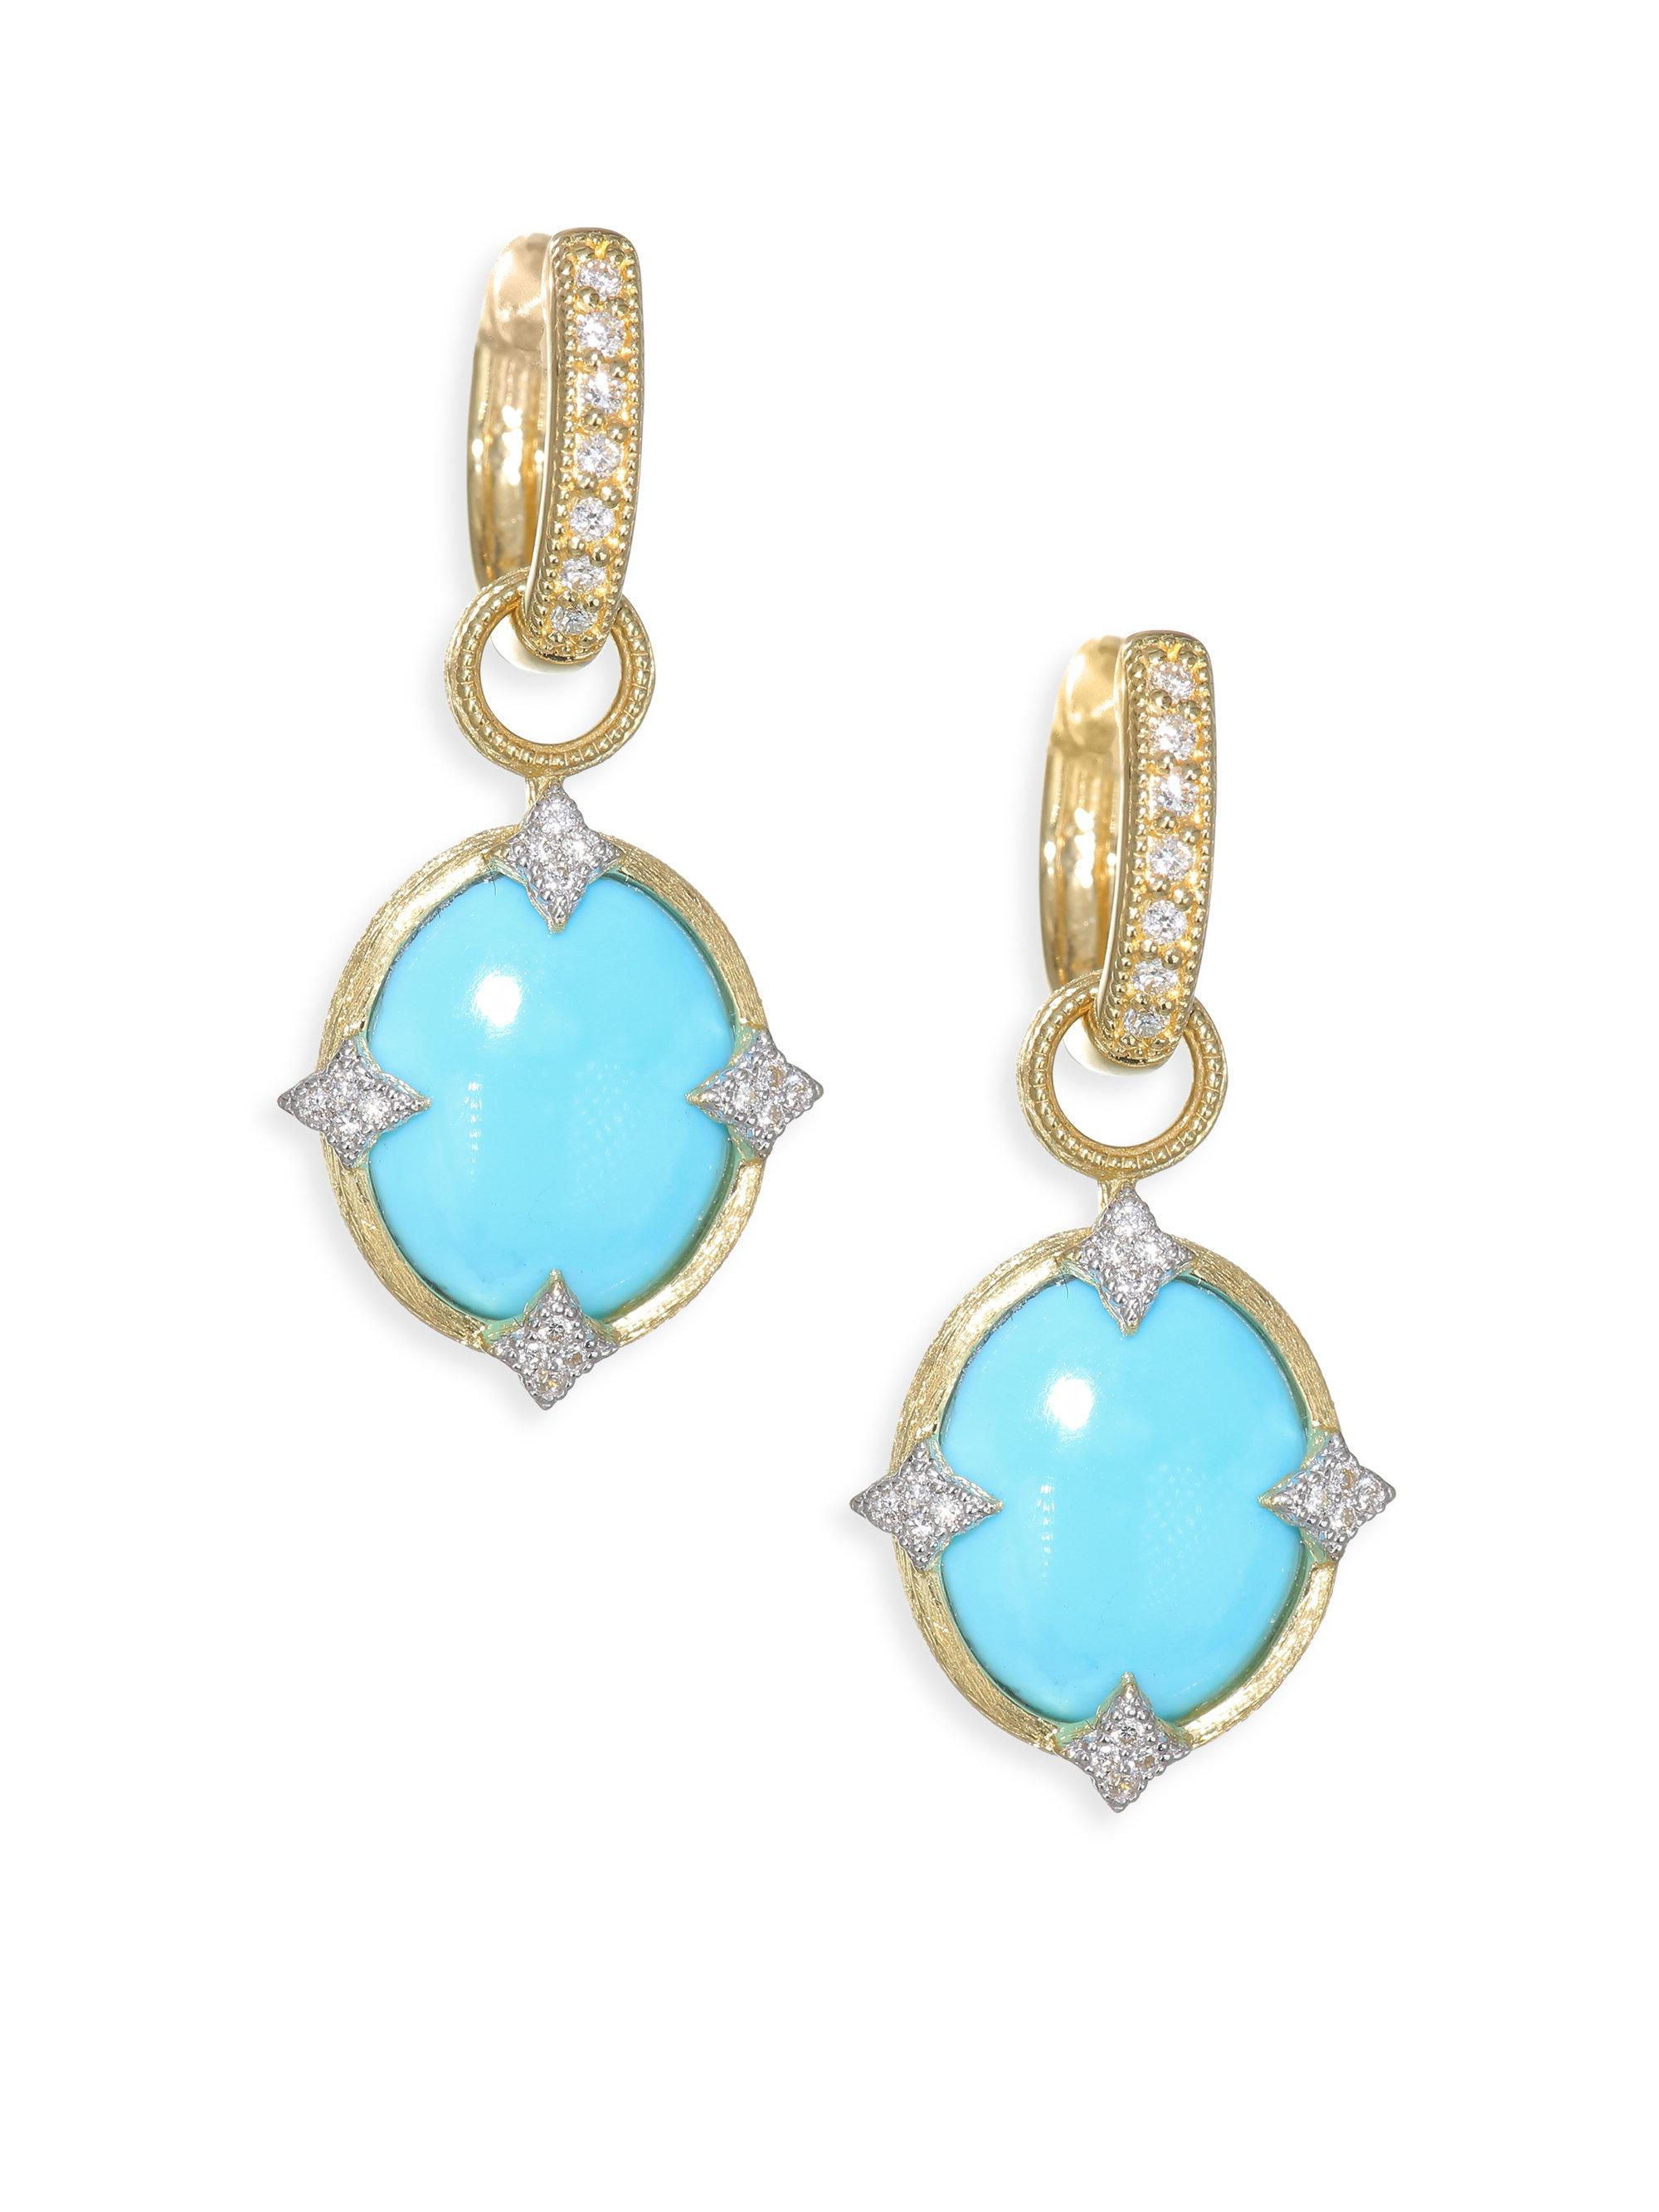 Jude Frances Moroccan Elongated Turquoise & Diamond Earring Charms 7jK6t